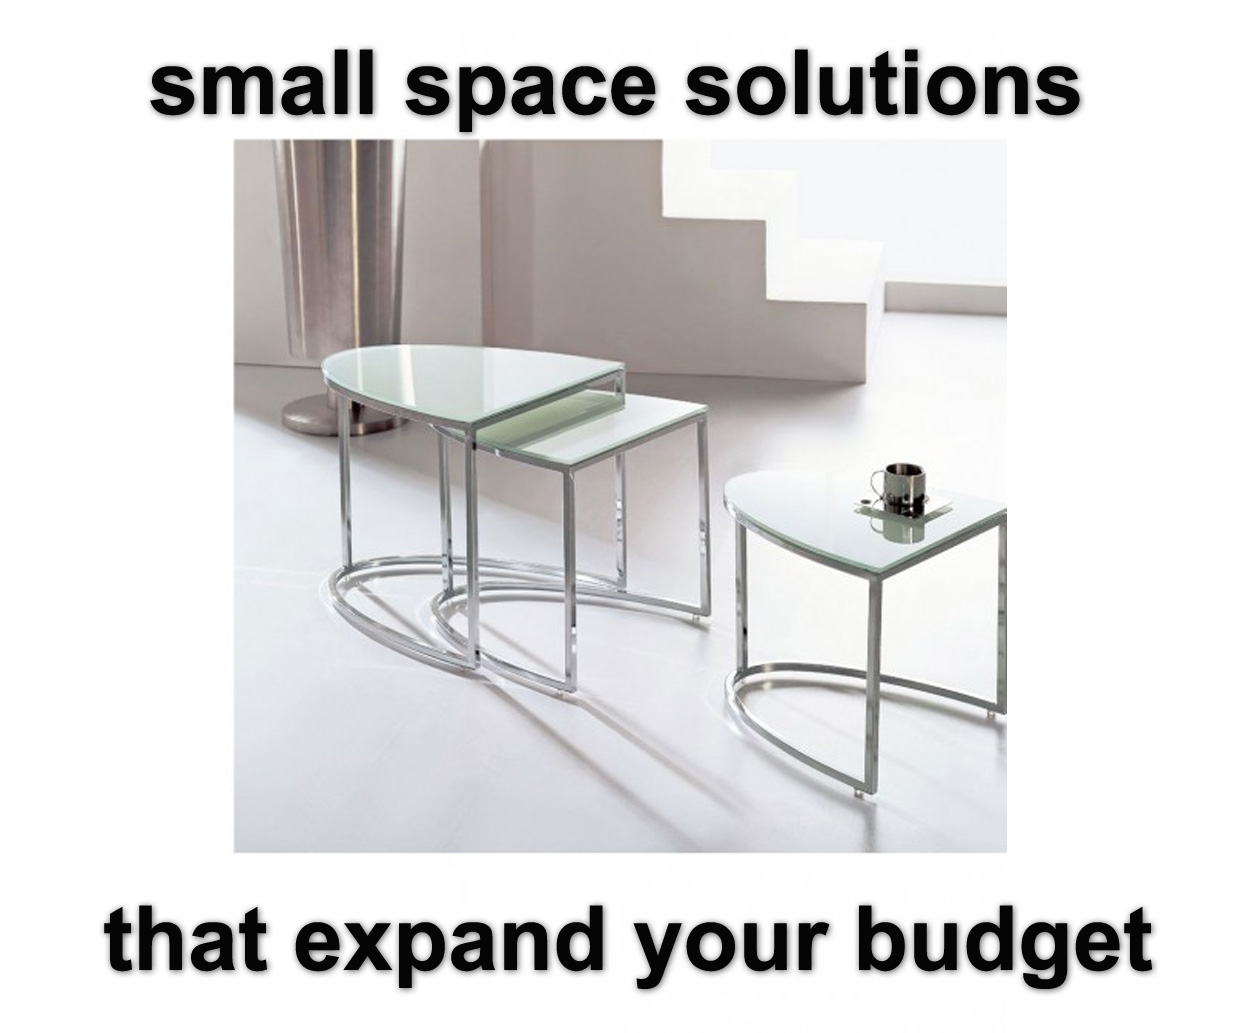 Small space solutions that won 39 t break the bank expand for Smart space solutions